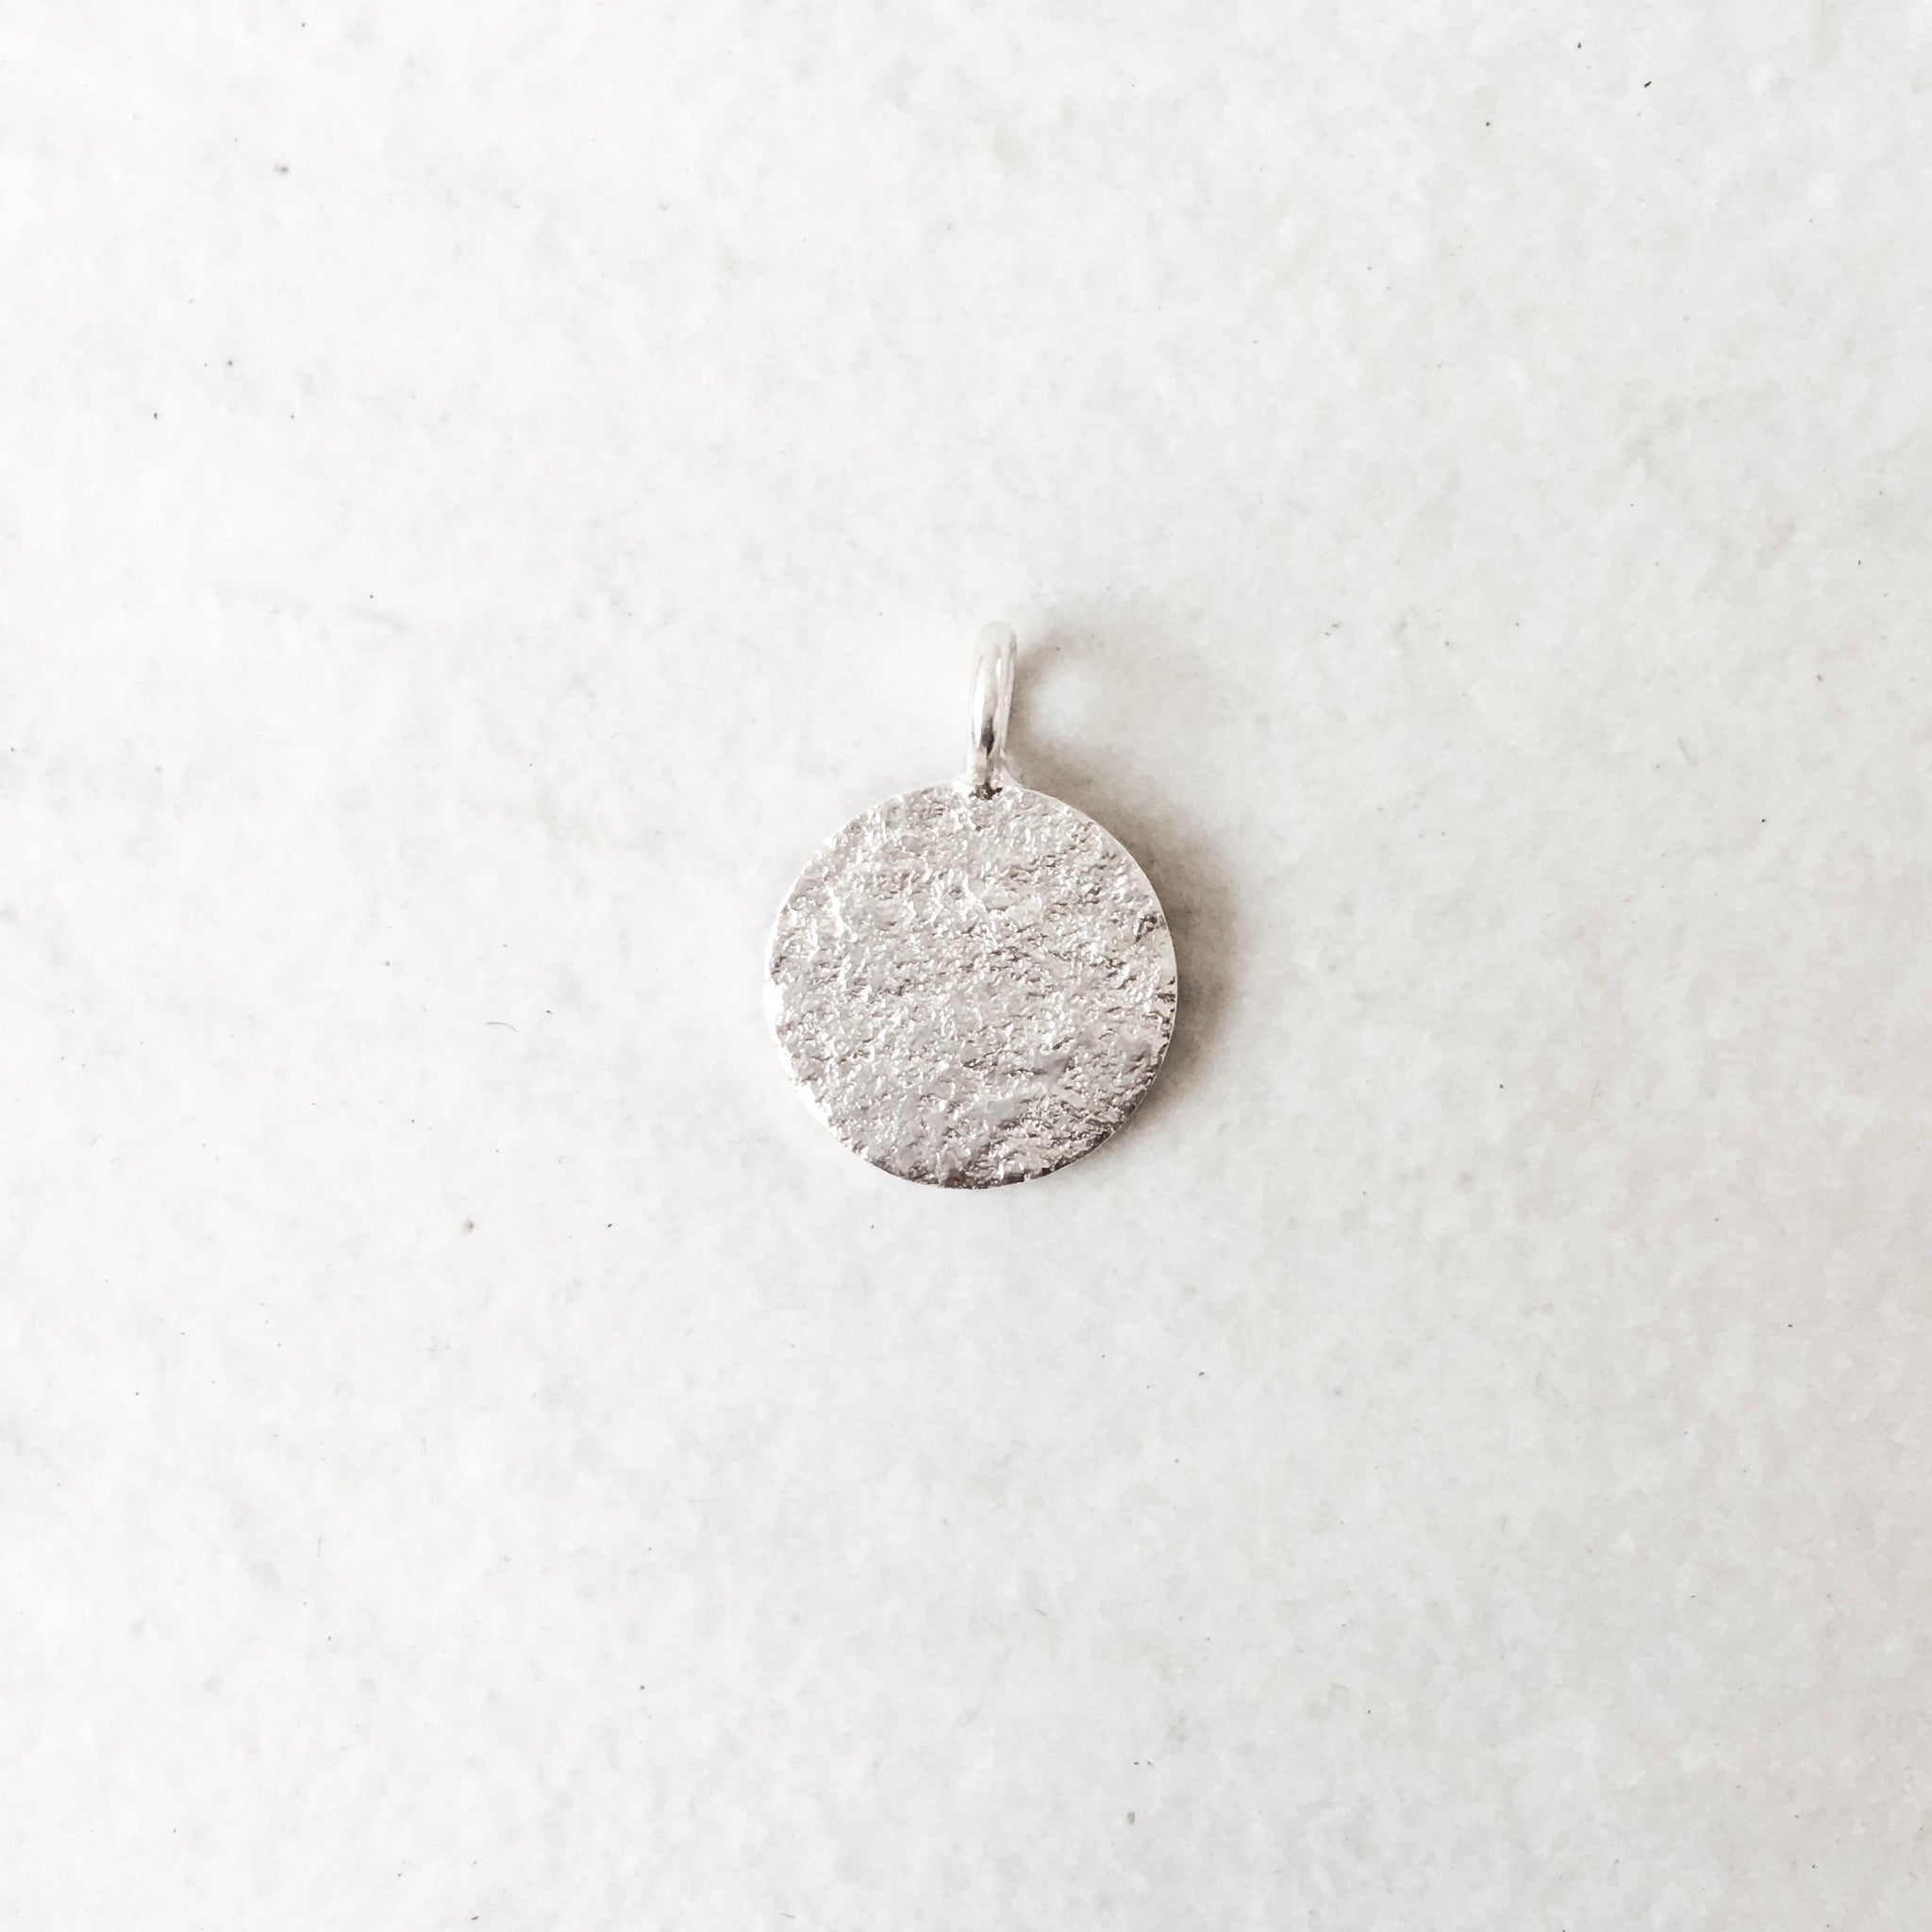 Silver Charm with Engraving (Complementary item for existing purchase)